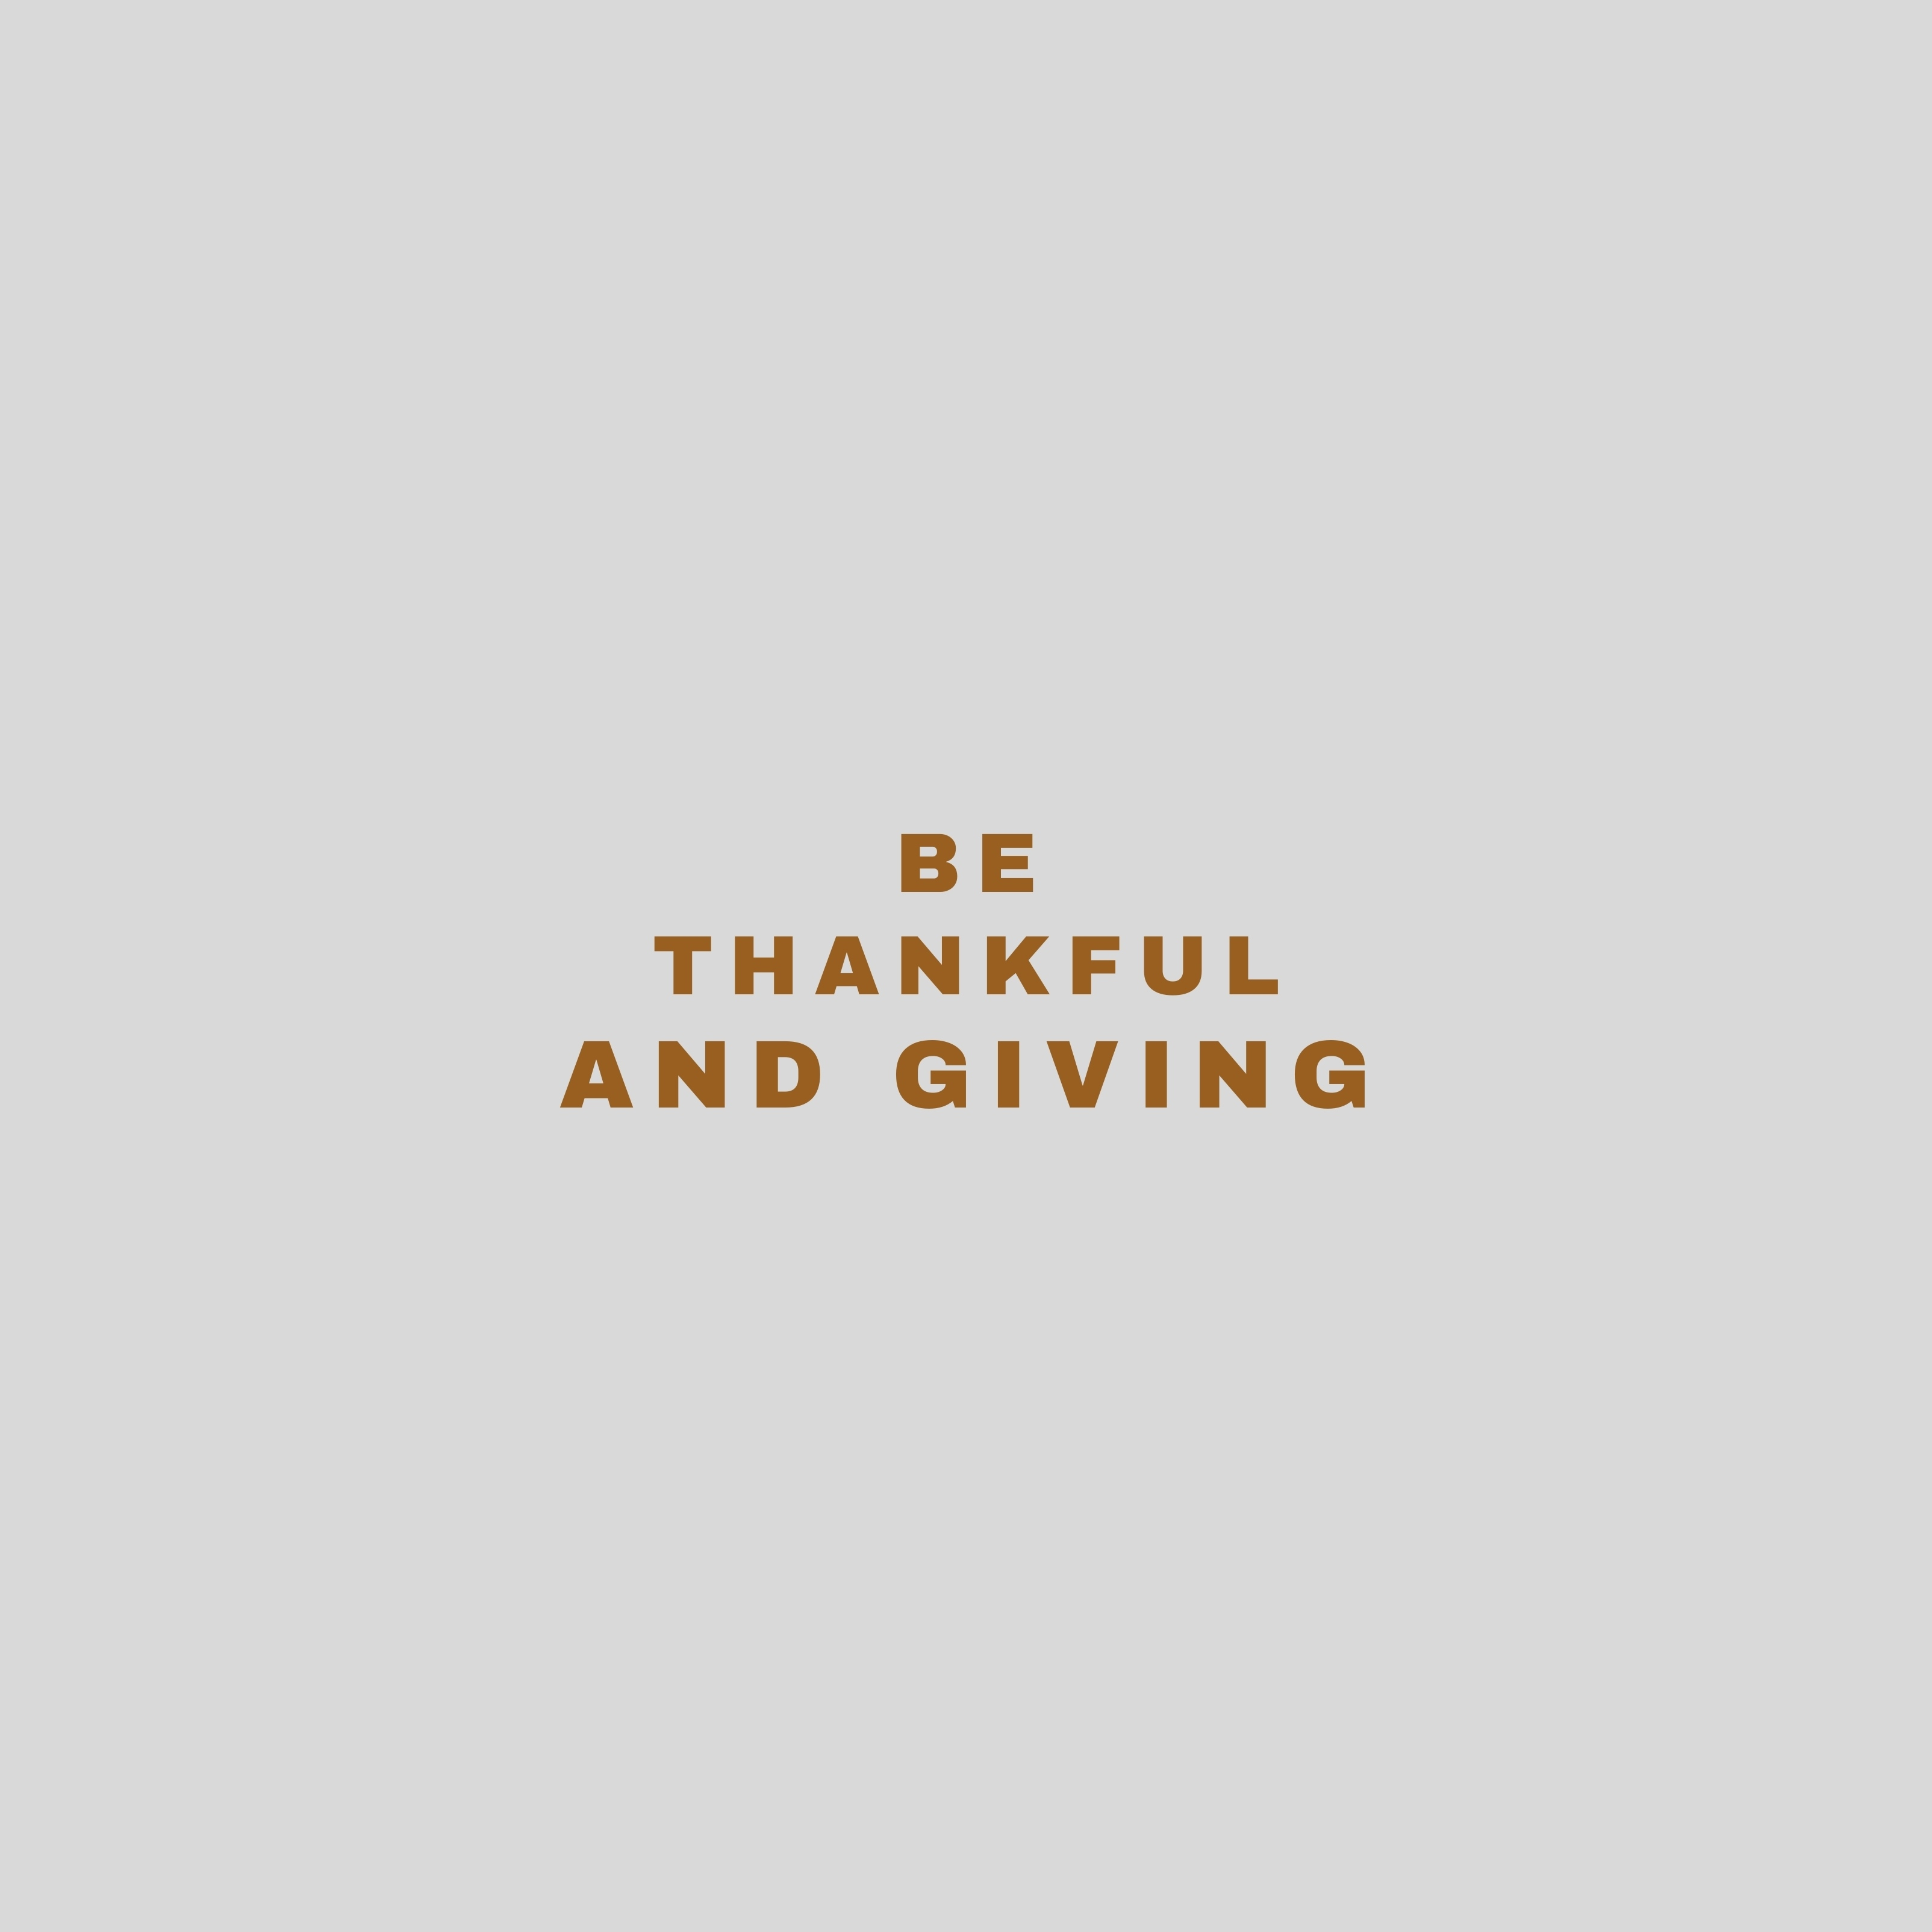 Be Thankful and Giving Quote iPad Wallpaper